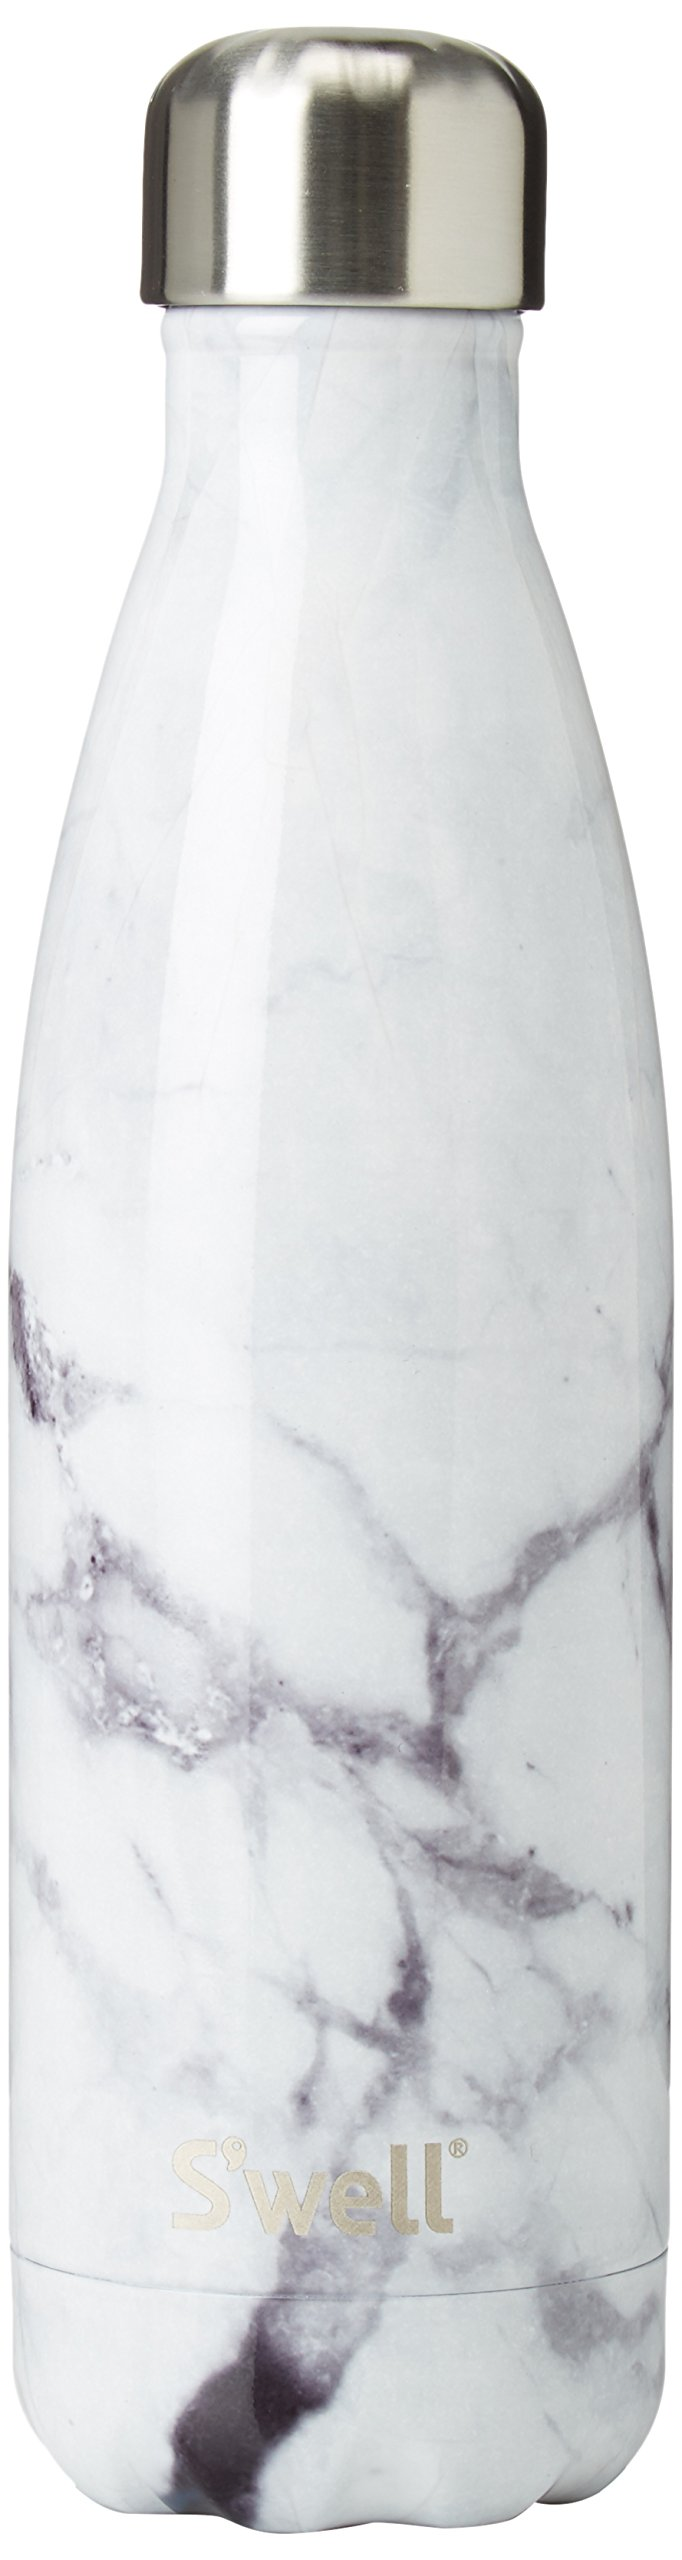 S'well Vacuum Insulated Stainless Steel Water Bottle, 17 oz, White Marble